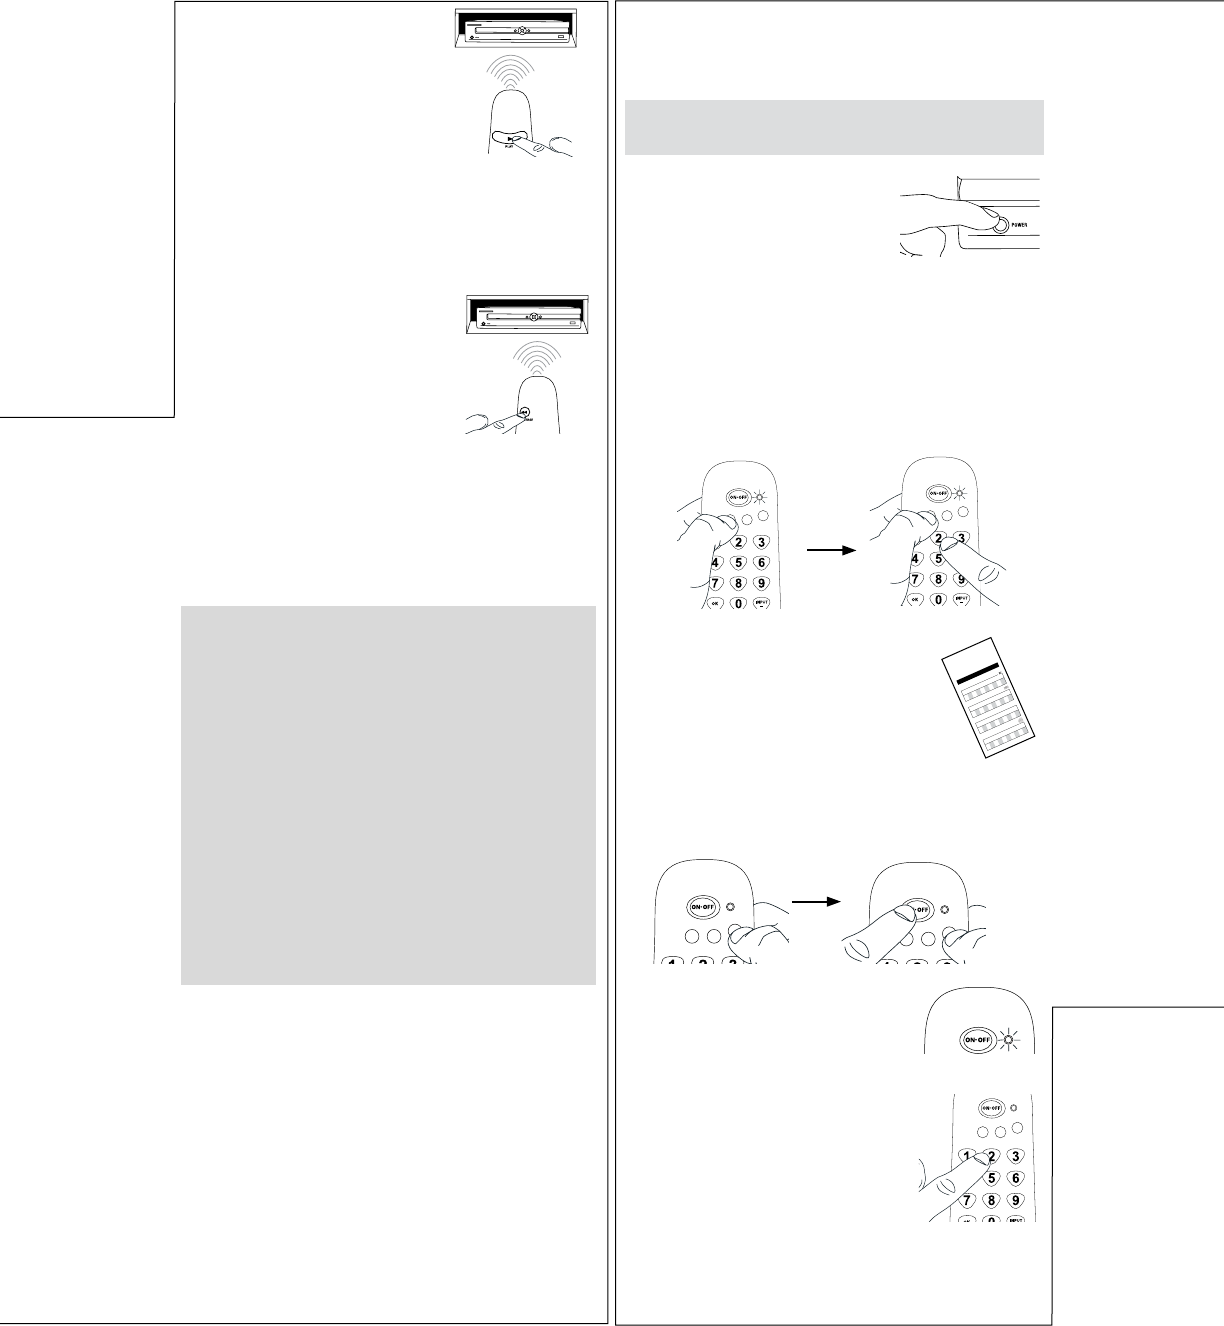 page 2 of rca universal remote crcr351 user guide. Black Bedroom Furniture Sets. Home Design Ideas